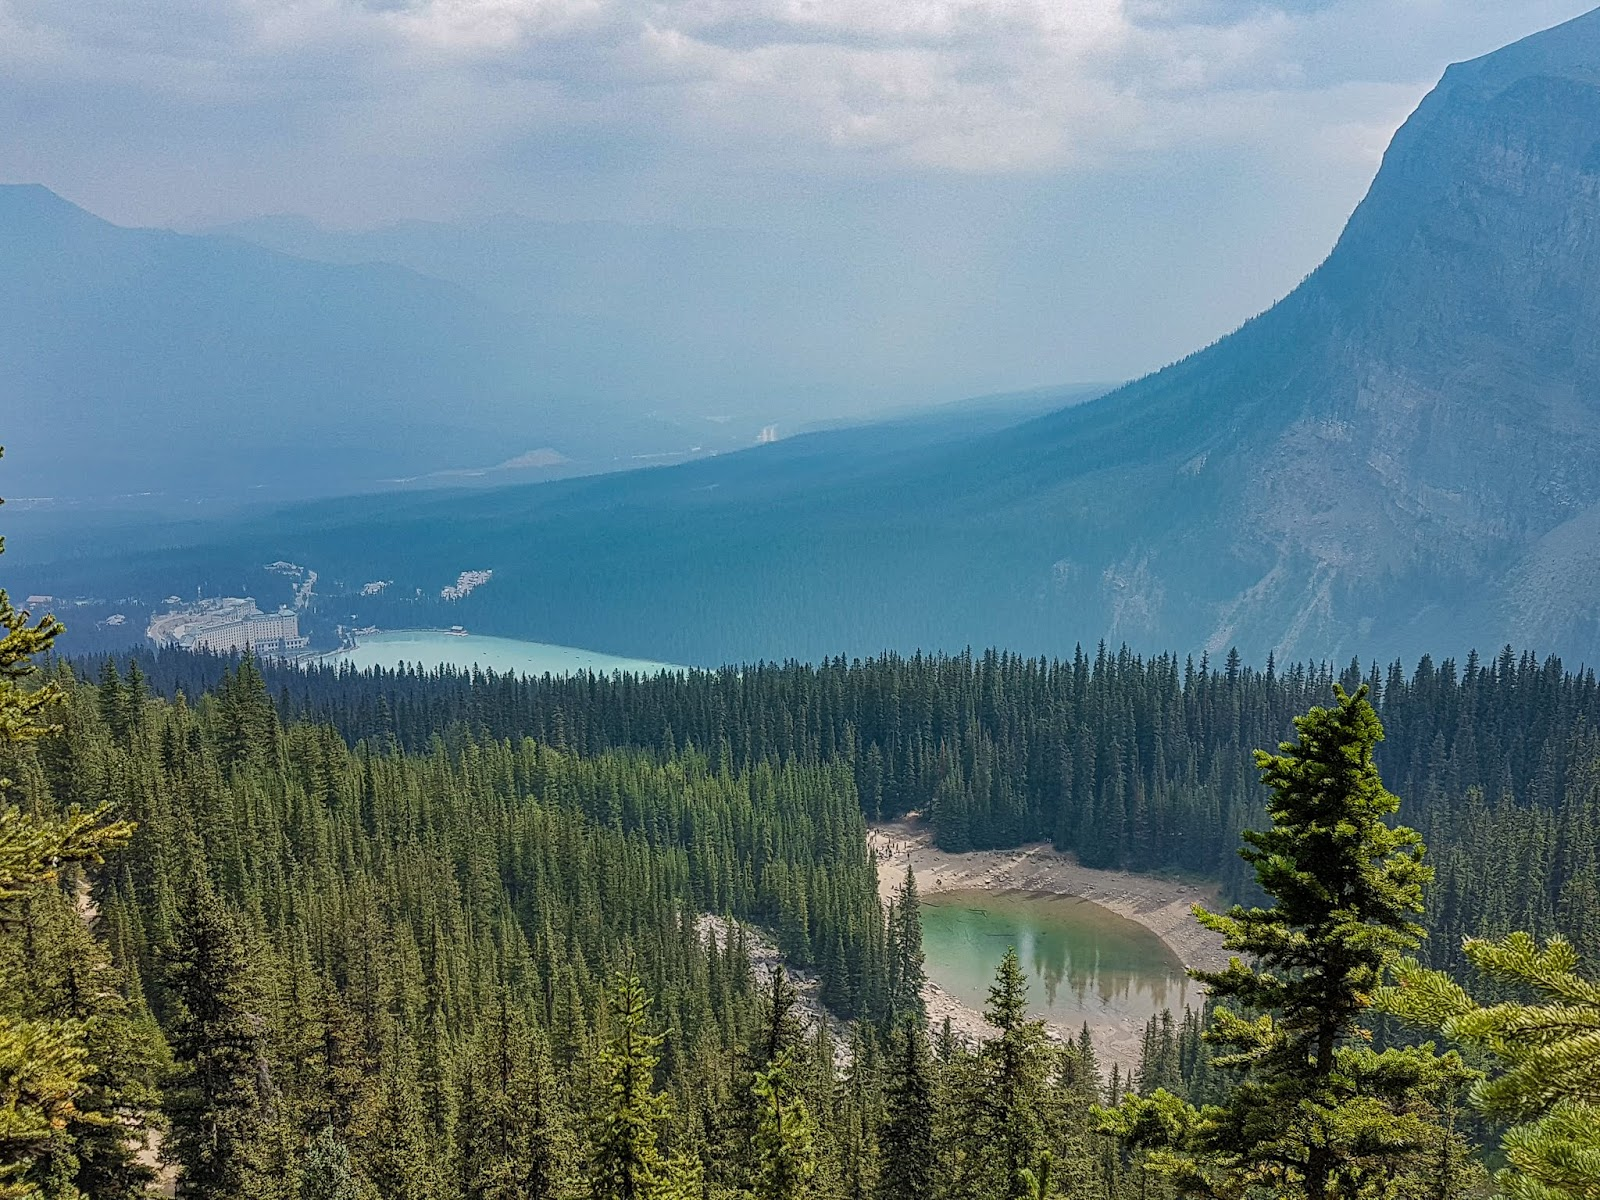 Looking down on Lake Louise (left) and Mirror Lake (right)